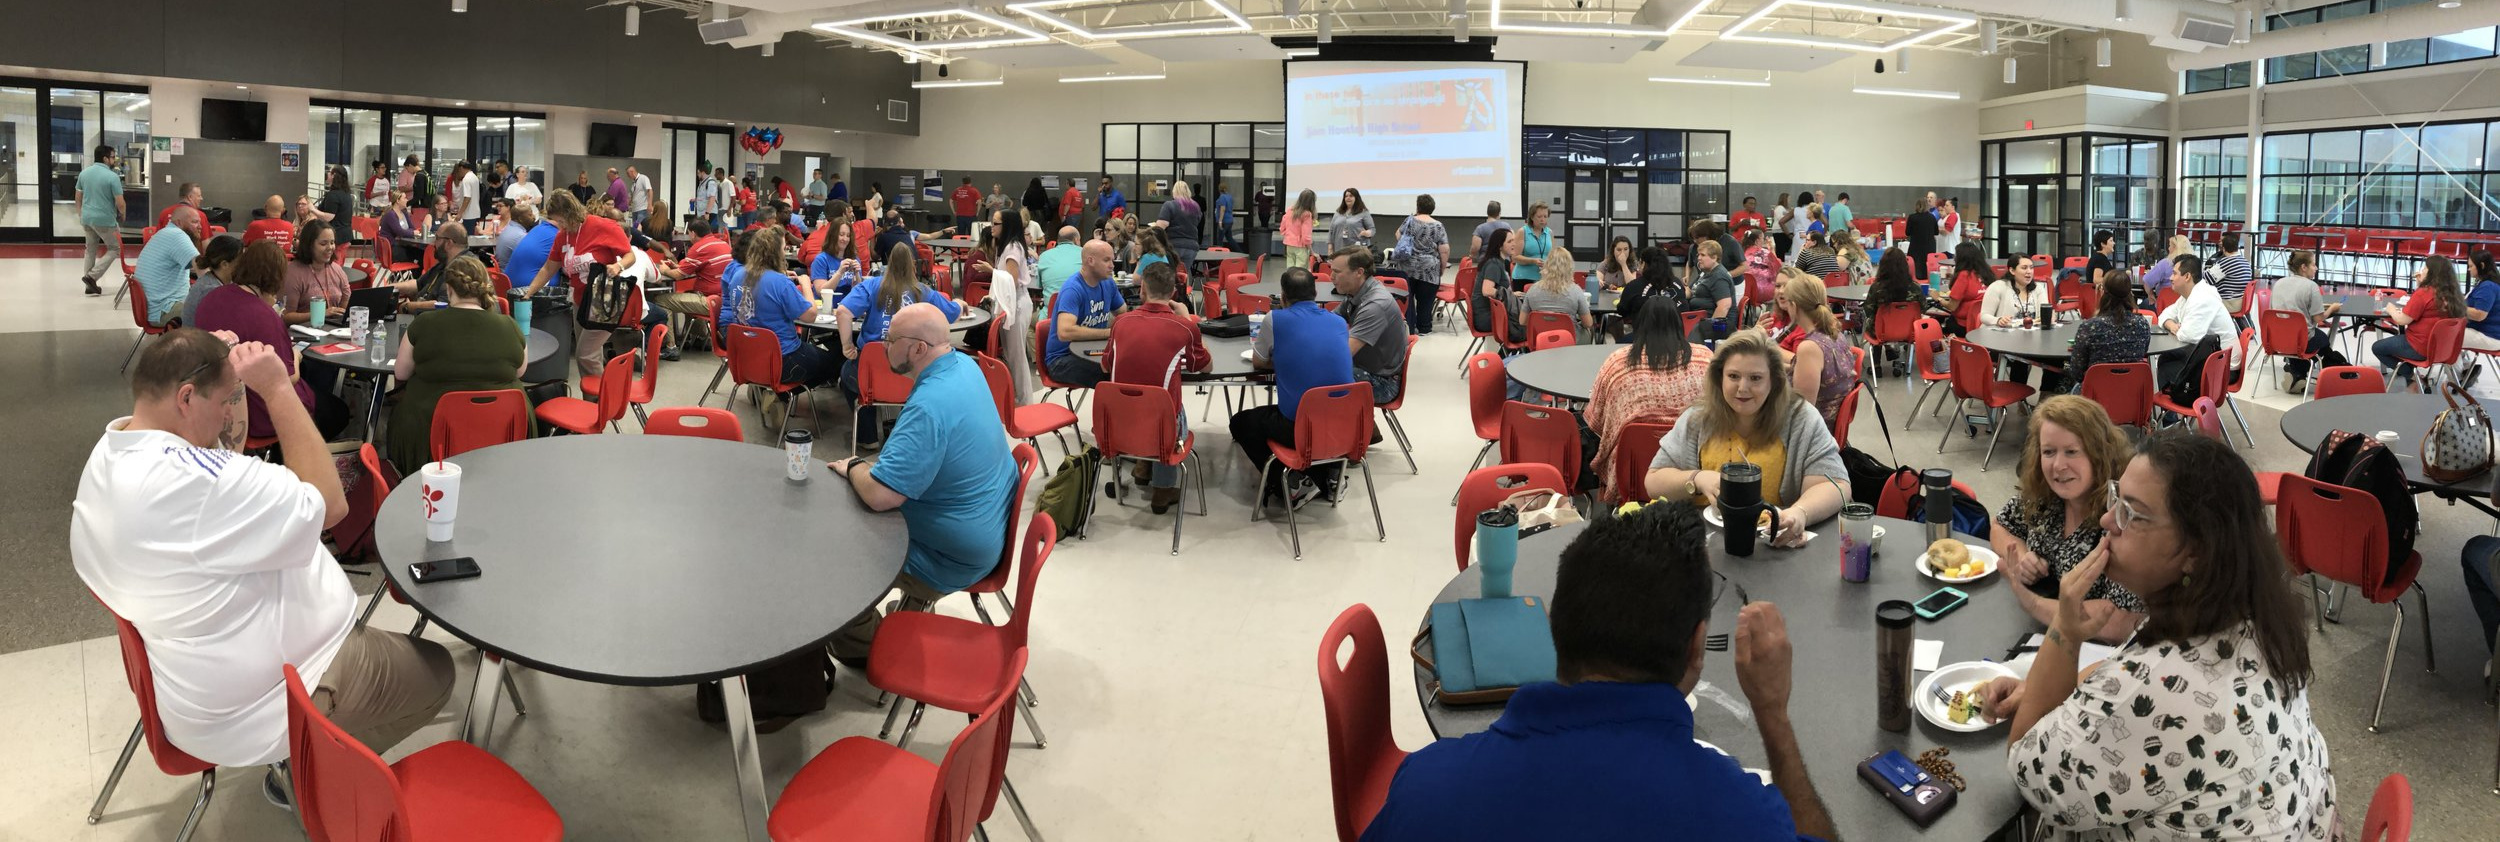 Faculty & Staff enjoying breakfast 8/8/19, served by the SHHS Alumni Association, in the Texan Cafe at Sam Houston.